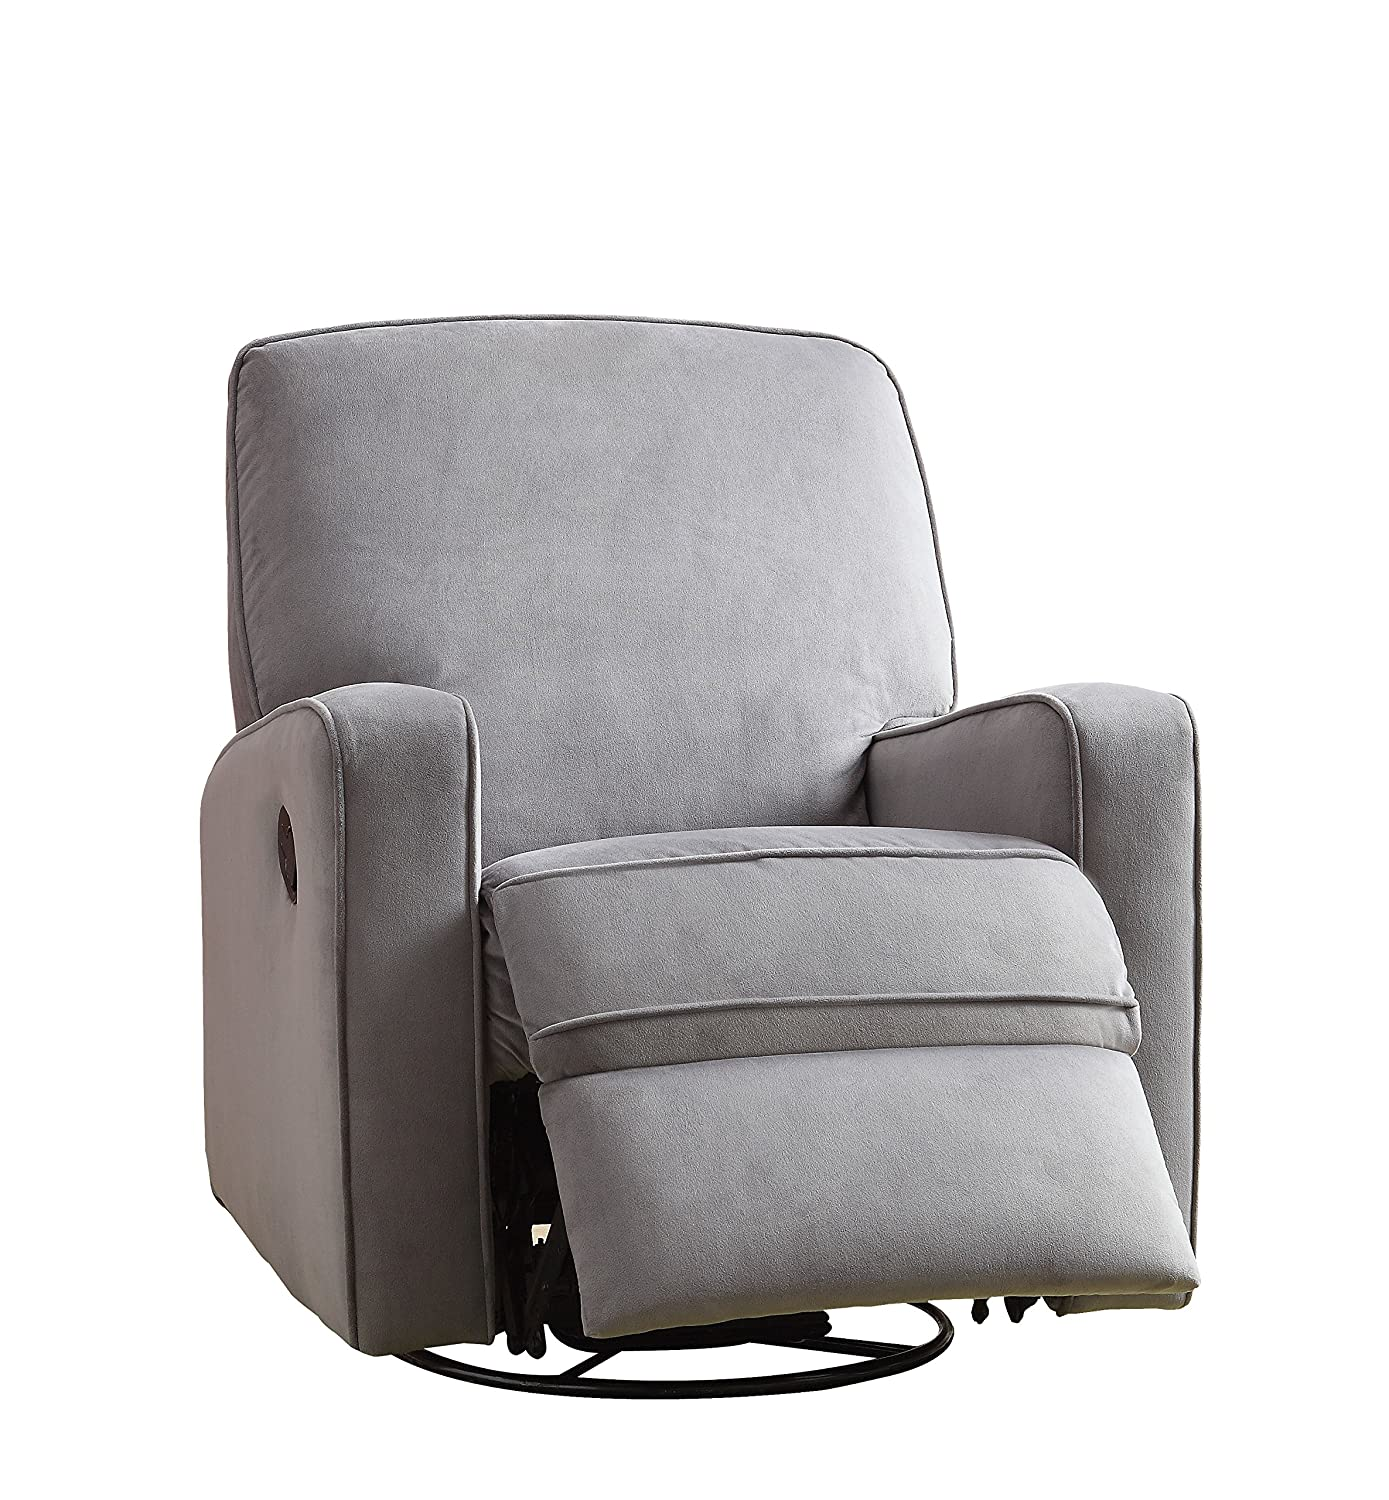 the reclining recliner mocha microsuede chair search chairs omega brick